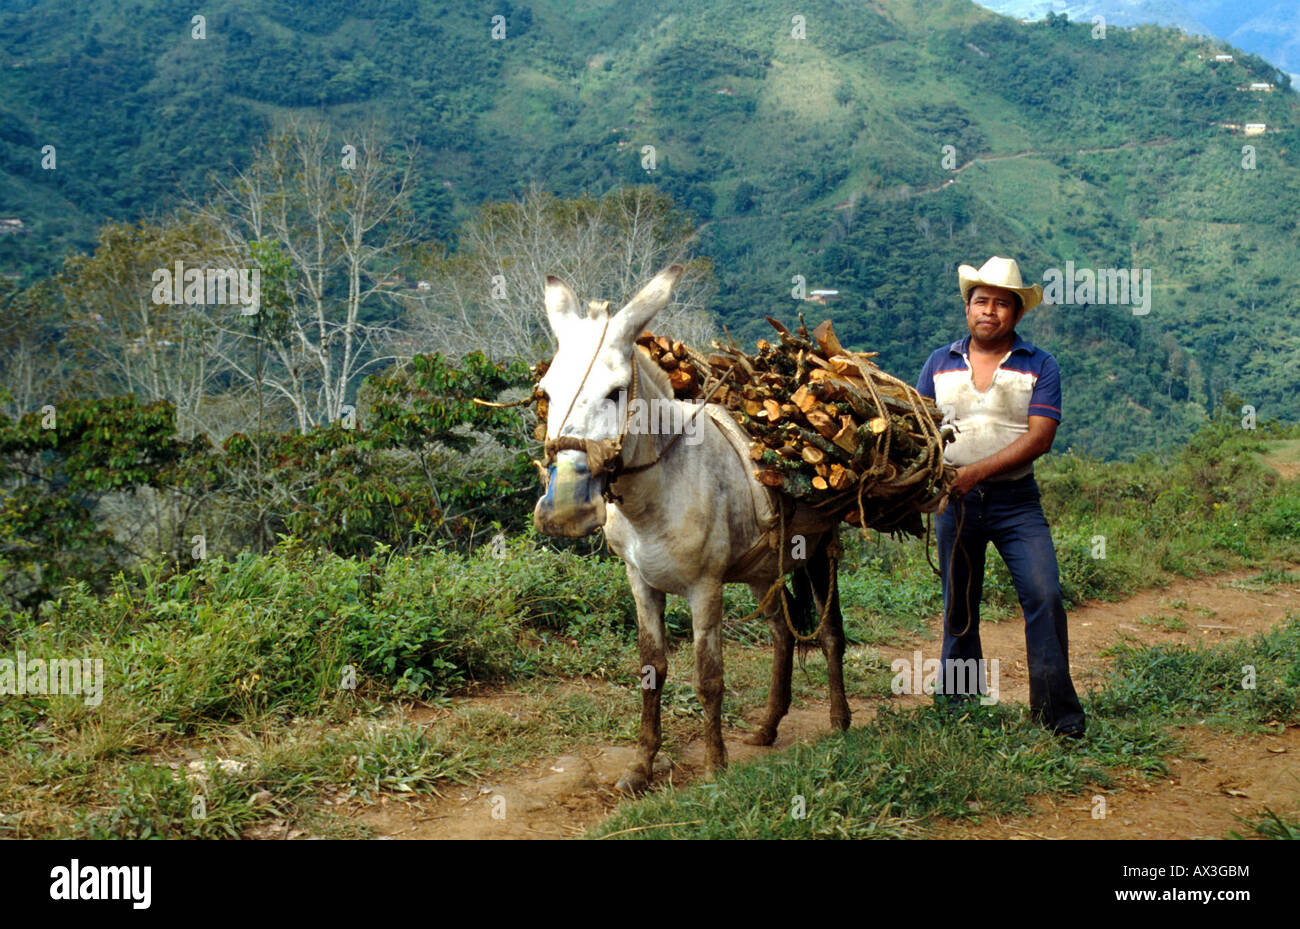 MEXICO. PEASANT CARRYING FIREWOOD IN THE MOUNTAINS OF OAXACA SOUTHERN MEXICO Photo Julio Etchart - Stock Image